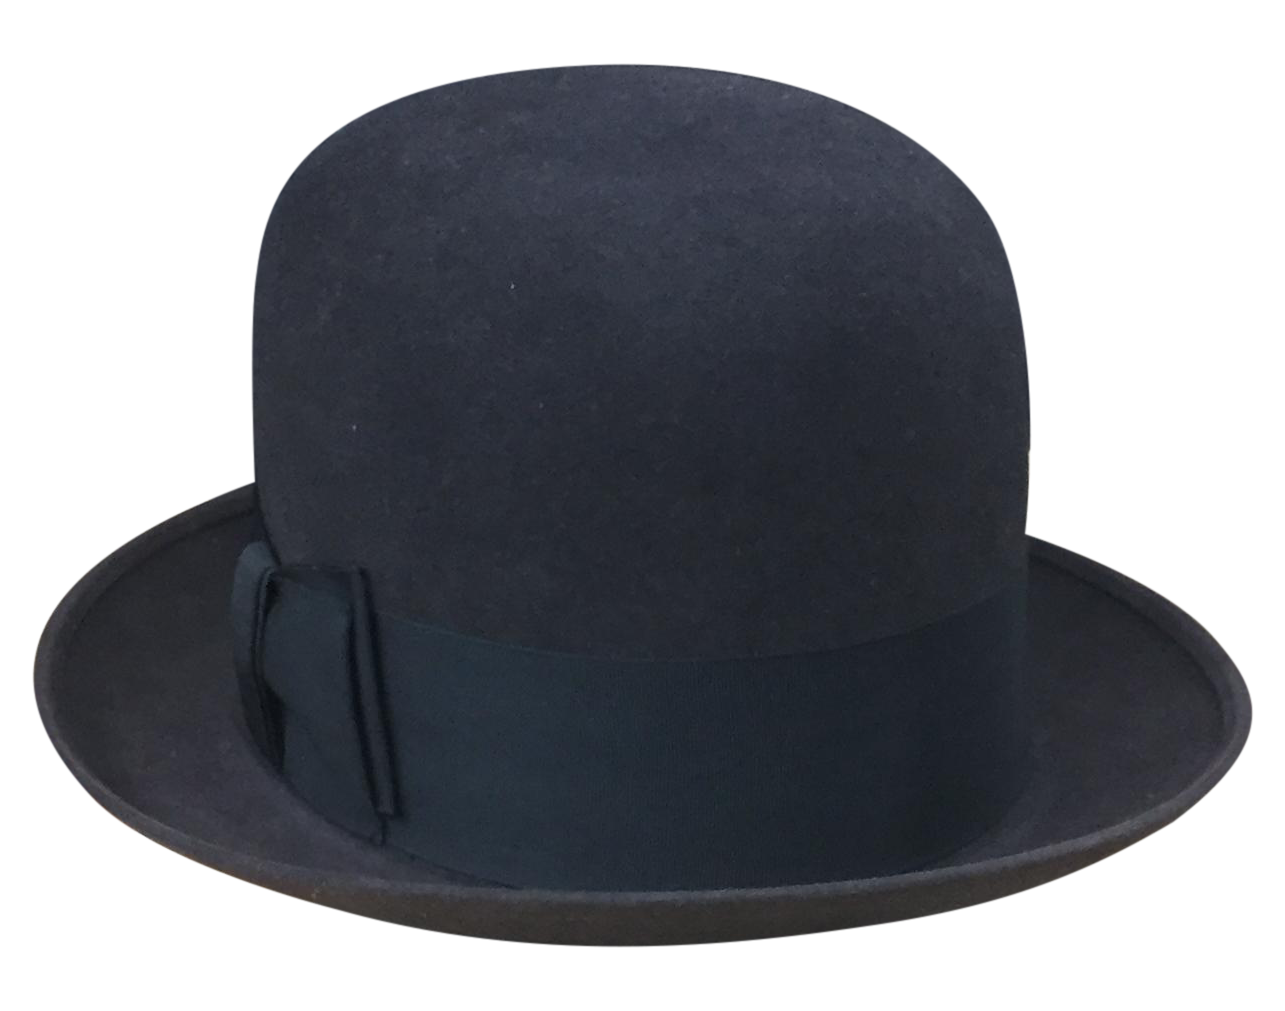 Vintage mallory stetson derby bowler hat chairish for Sofa global 6450